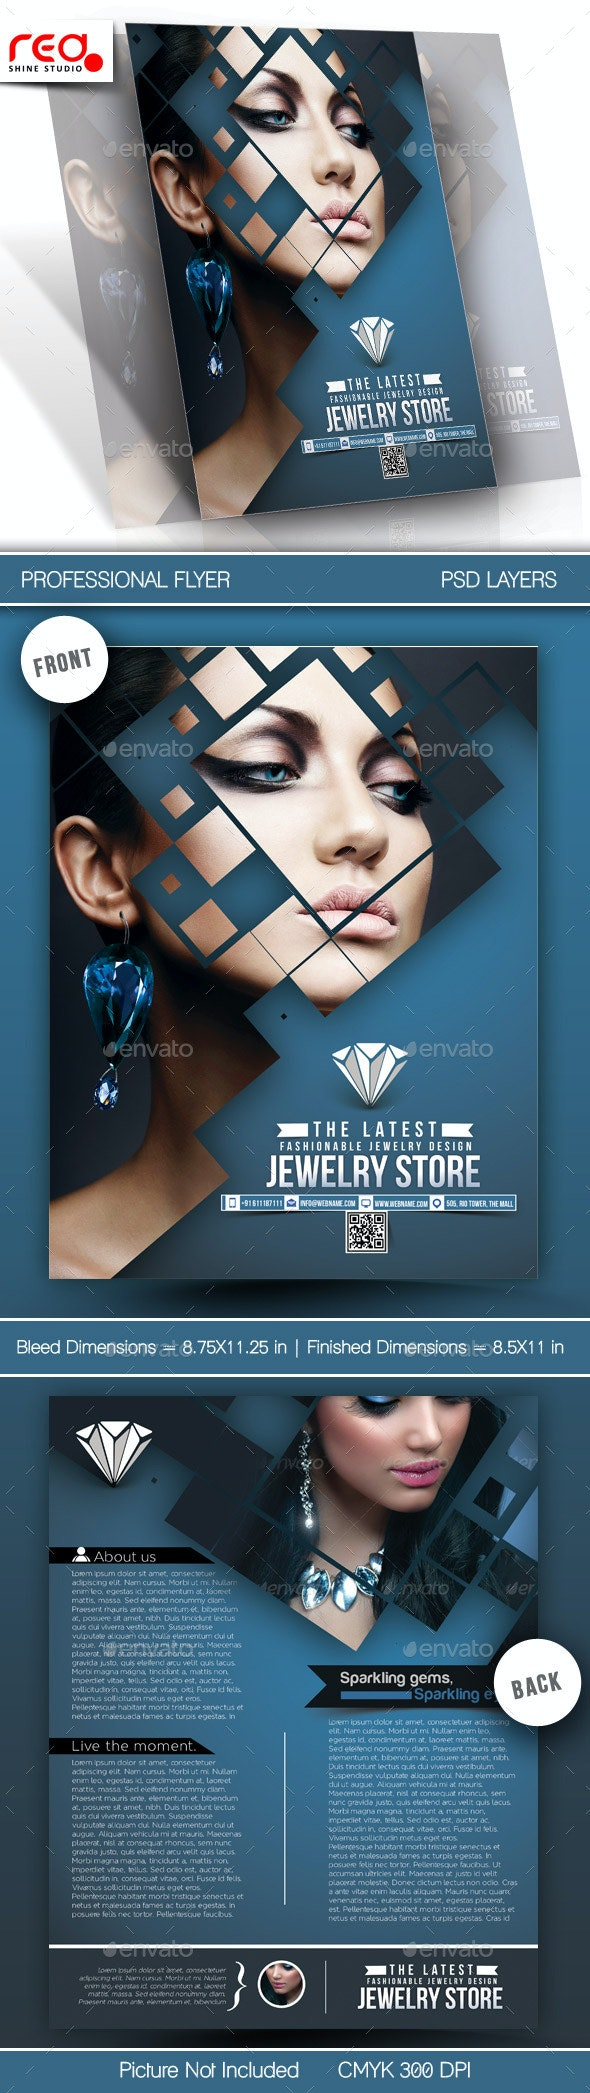 Jewelry Store Flyer Template - Commerce Flyers